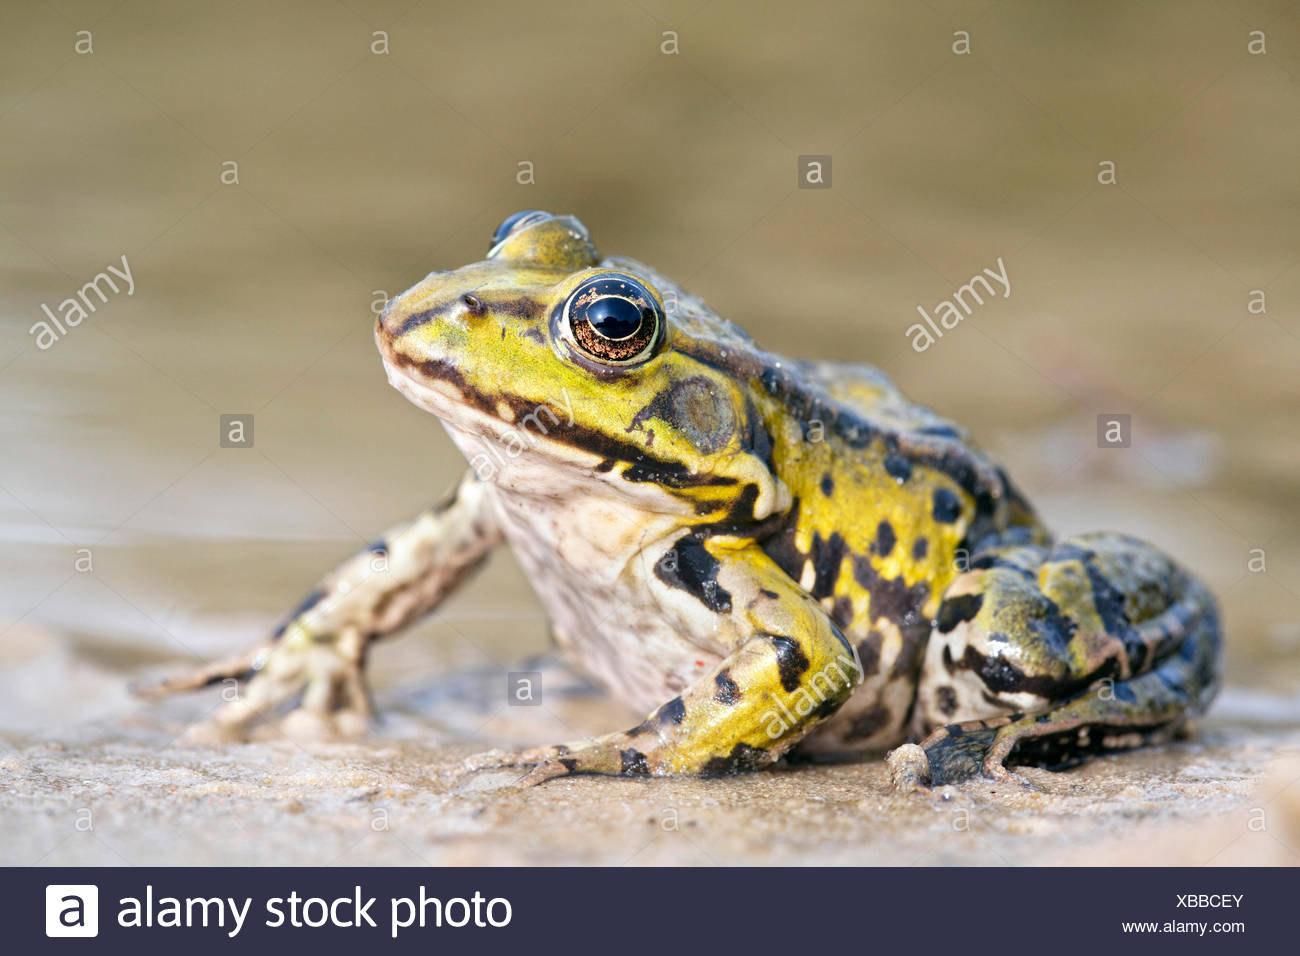 photo of a edible frog on the shore Stock Photo